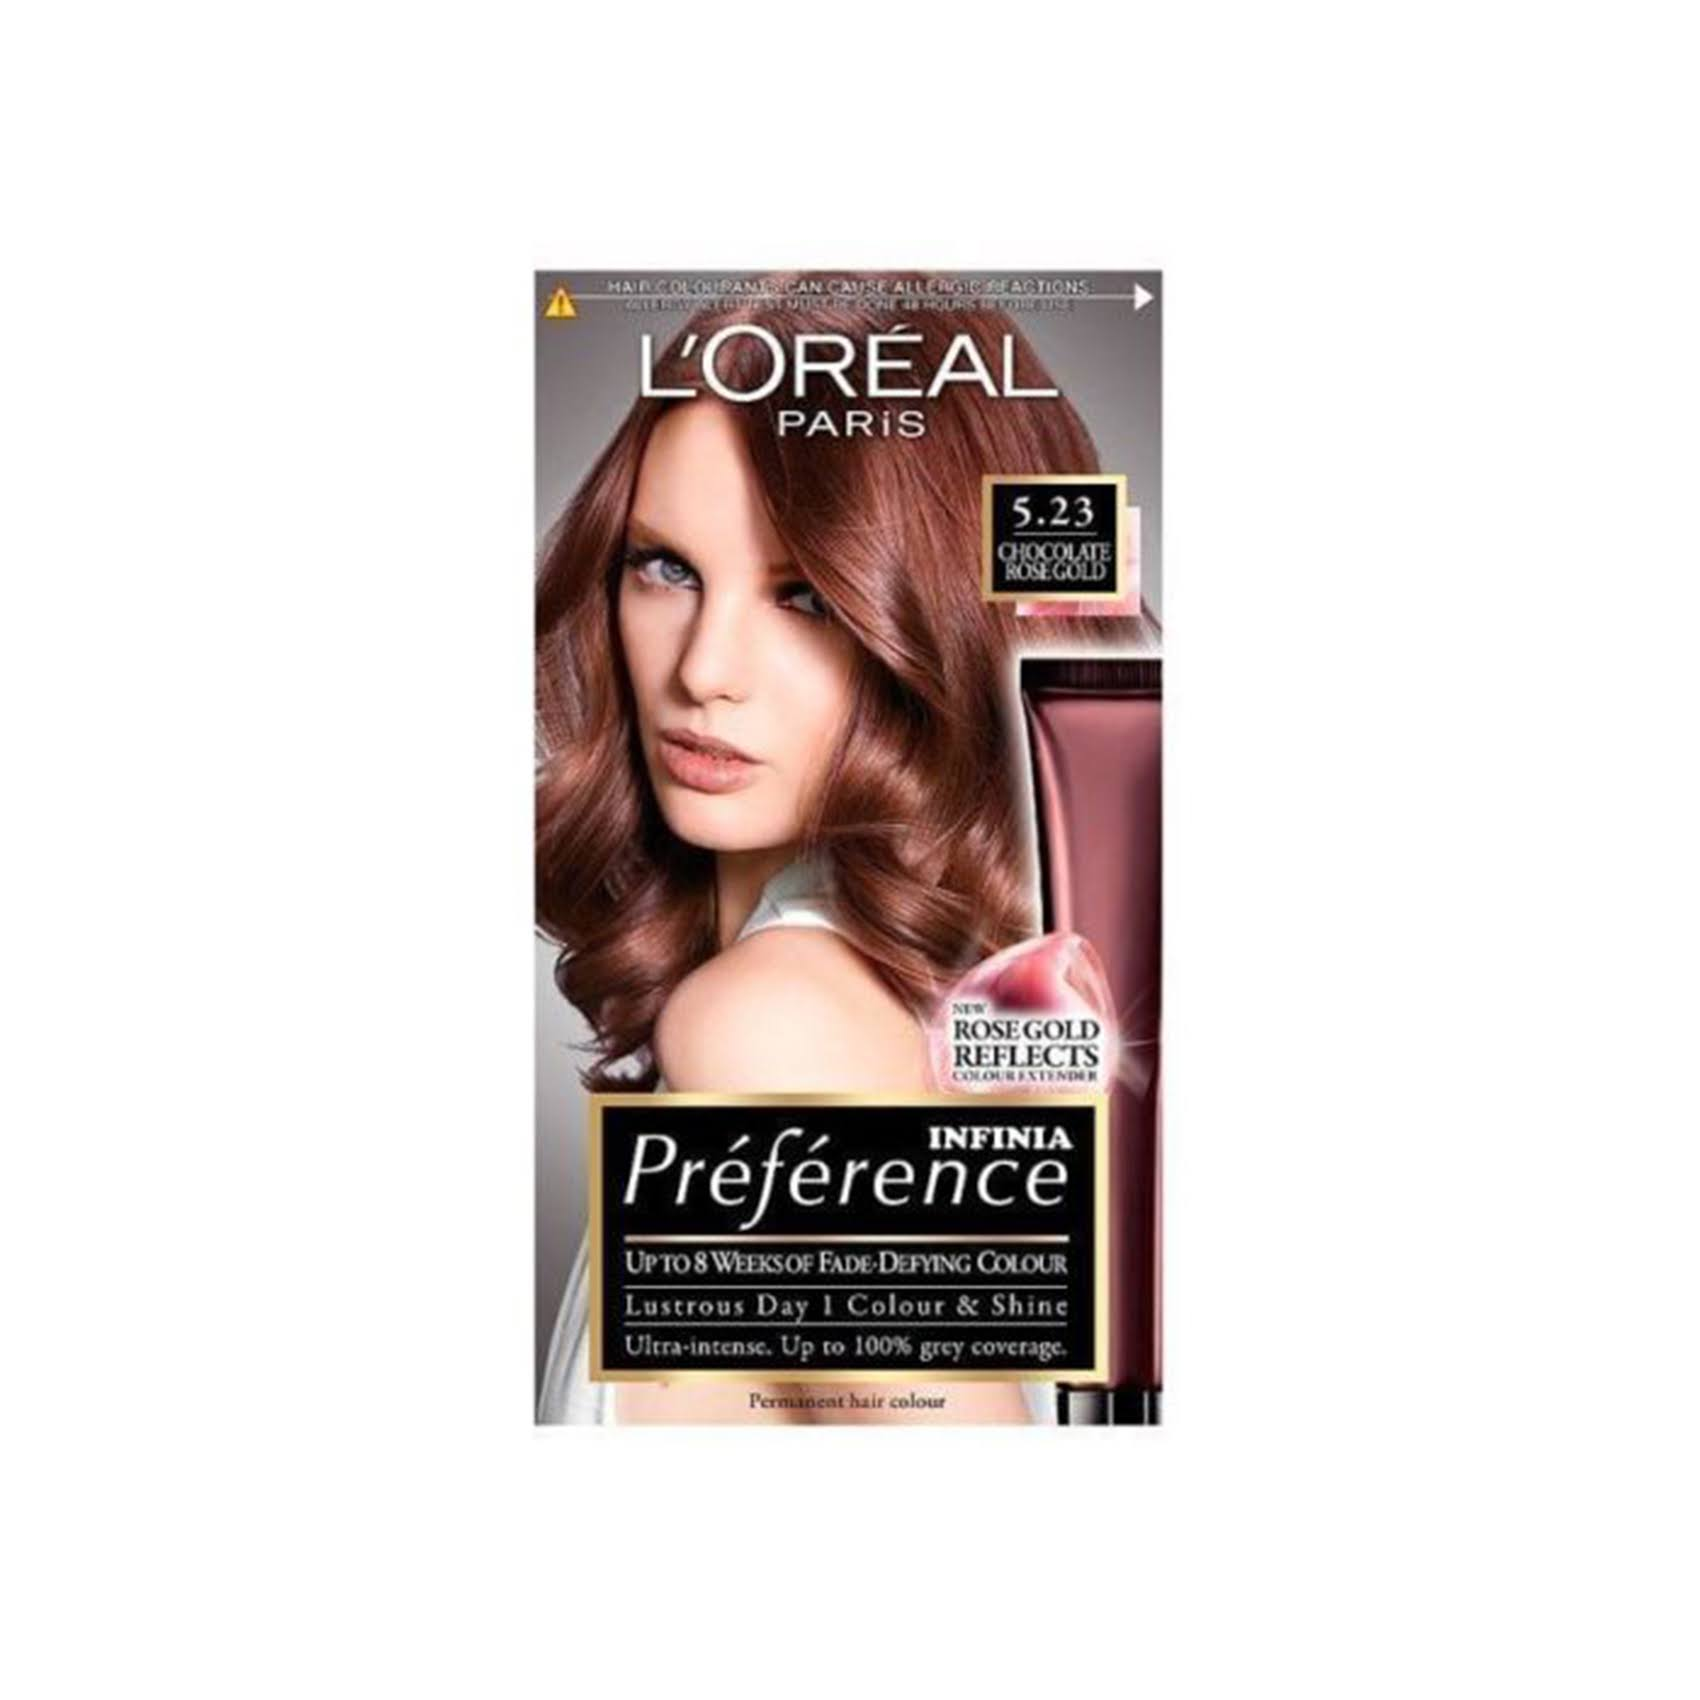 Preference Infinia 5.23 Chocolate Rose Gold Brown Permanent Hair Dye